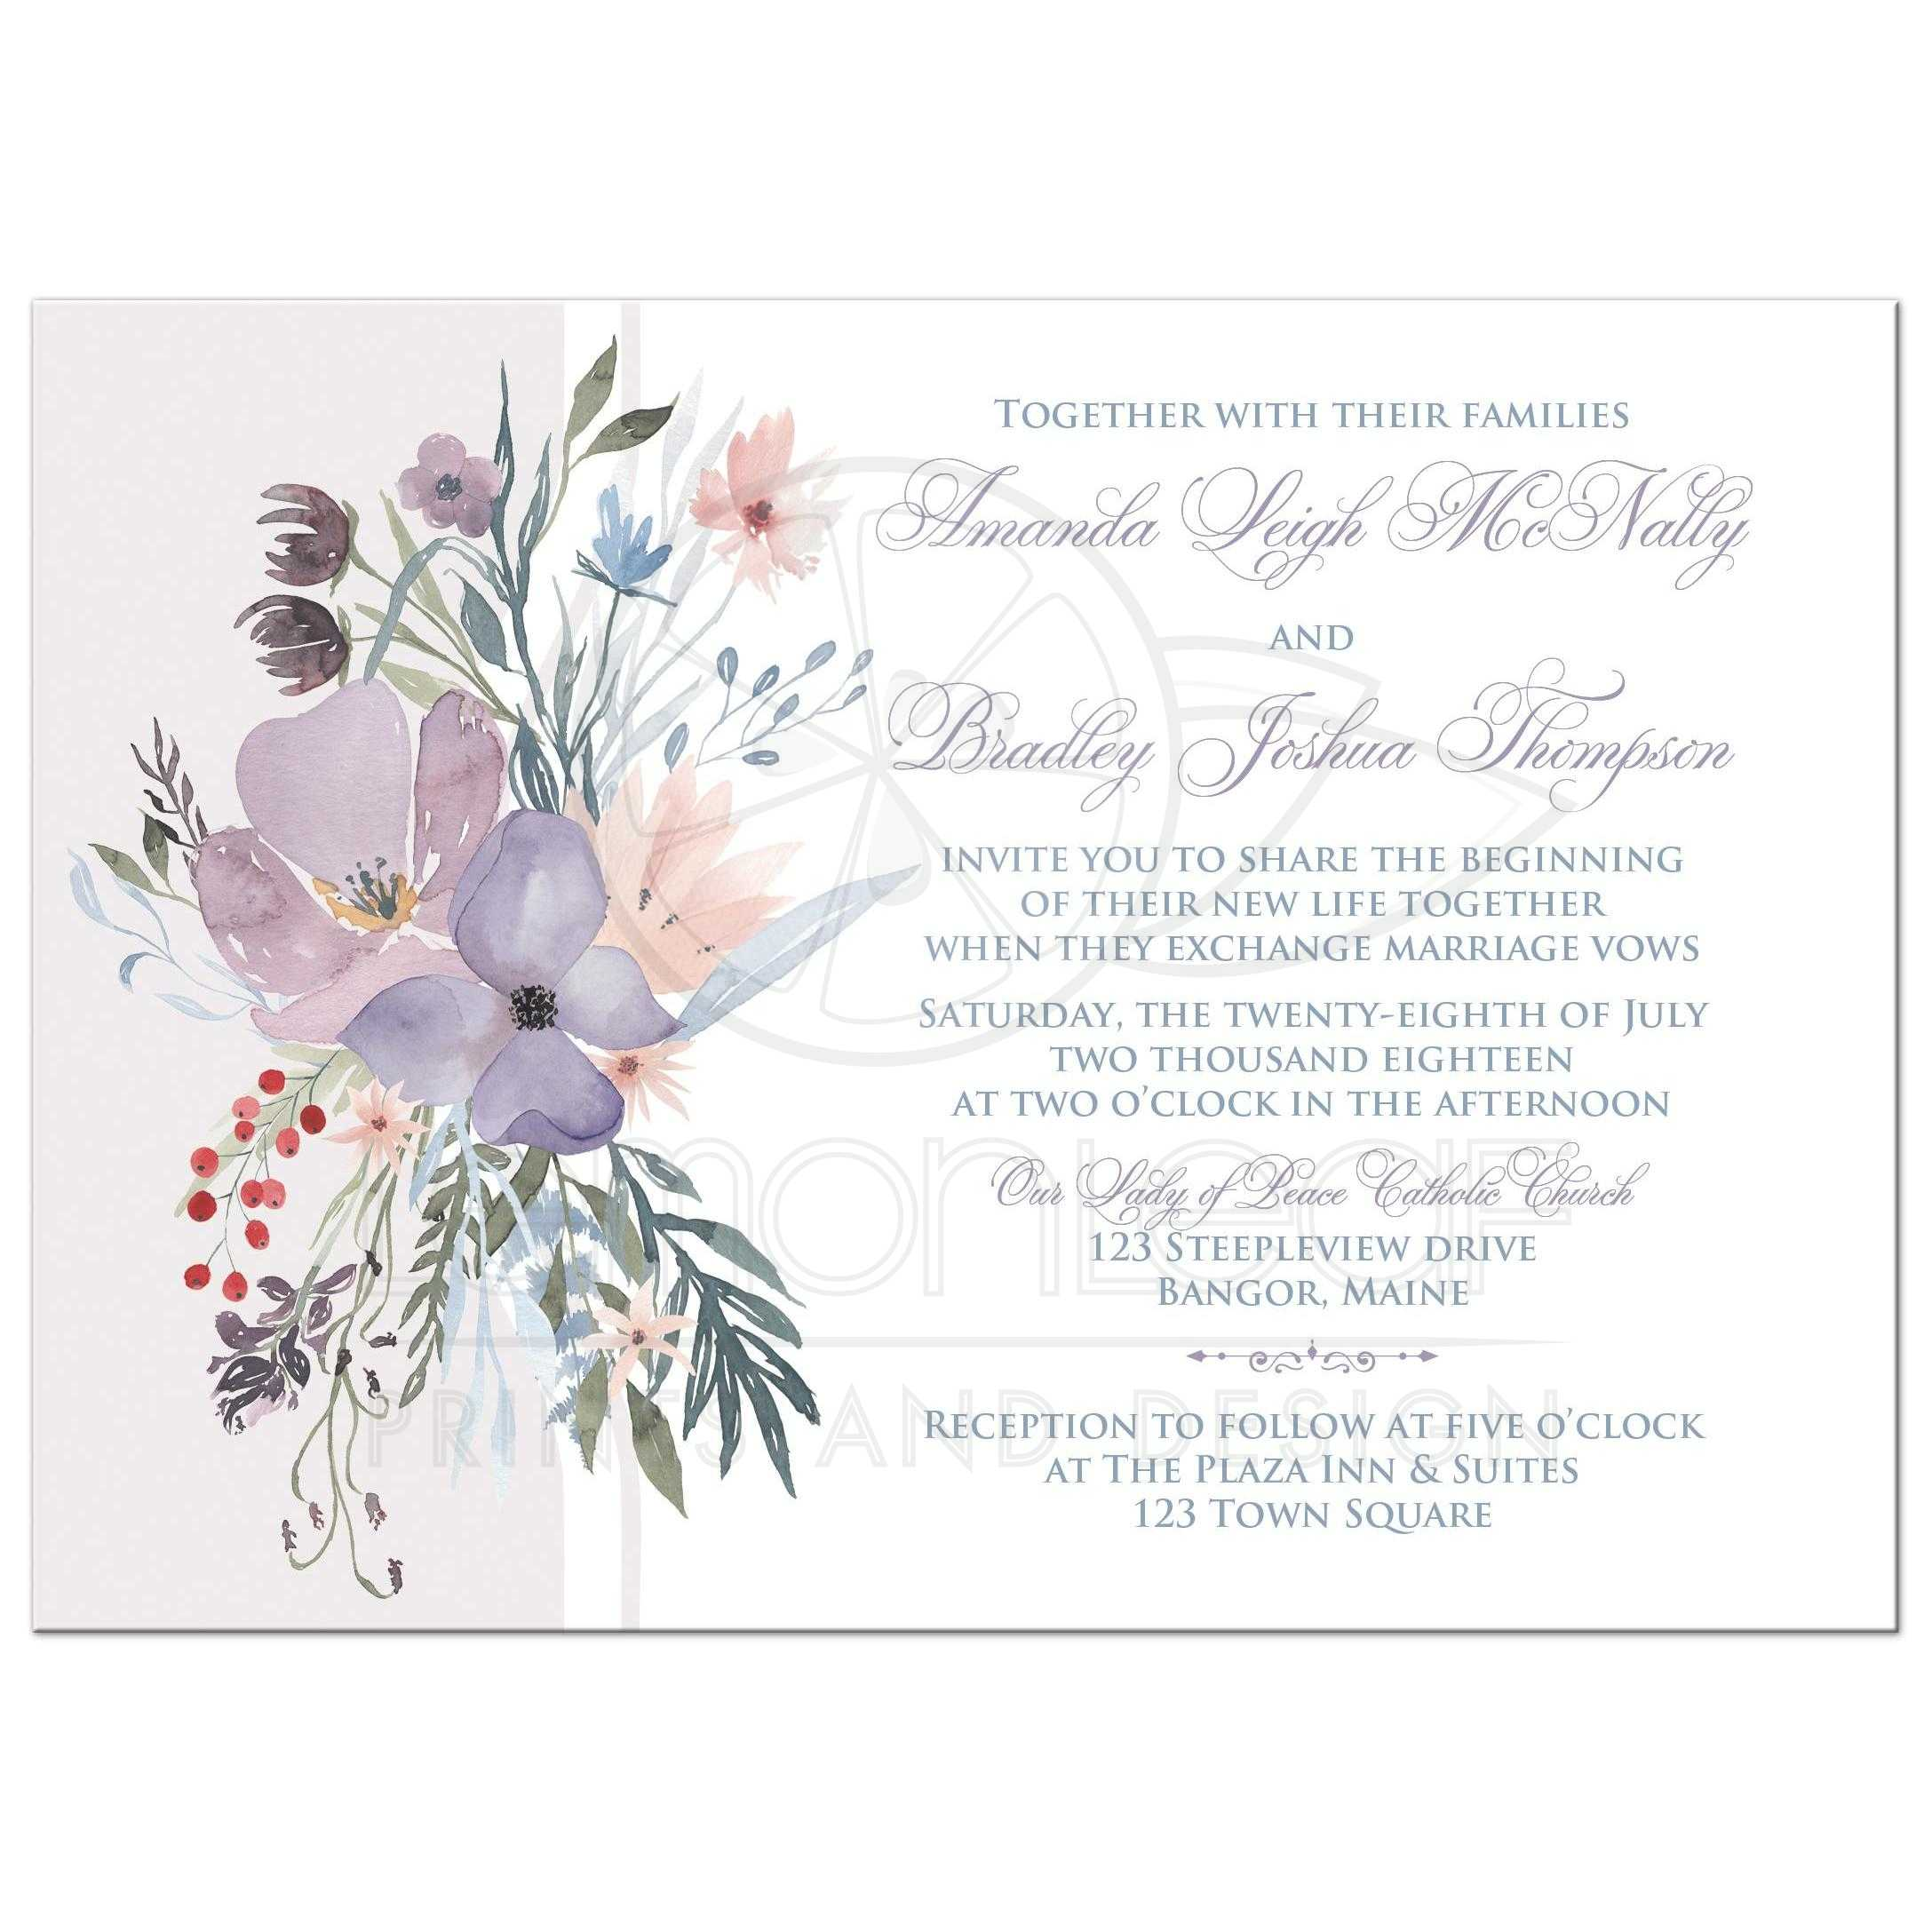 Wonderful Watercolor Wildflowers Wedding Invitation Has A Beautiful Array Of  Wildflowers And Greenery In Shades Of Smokey ... Good Looking